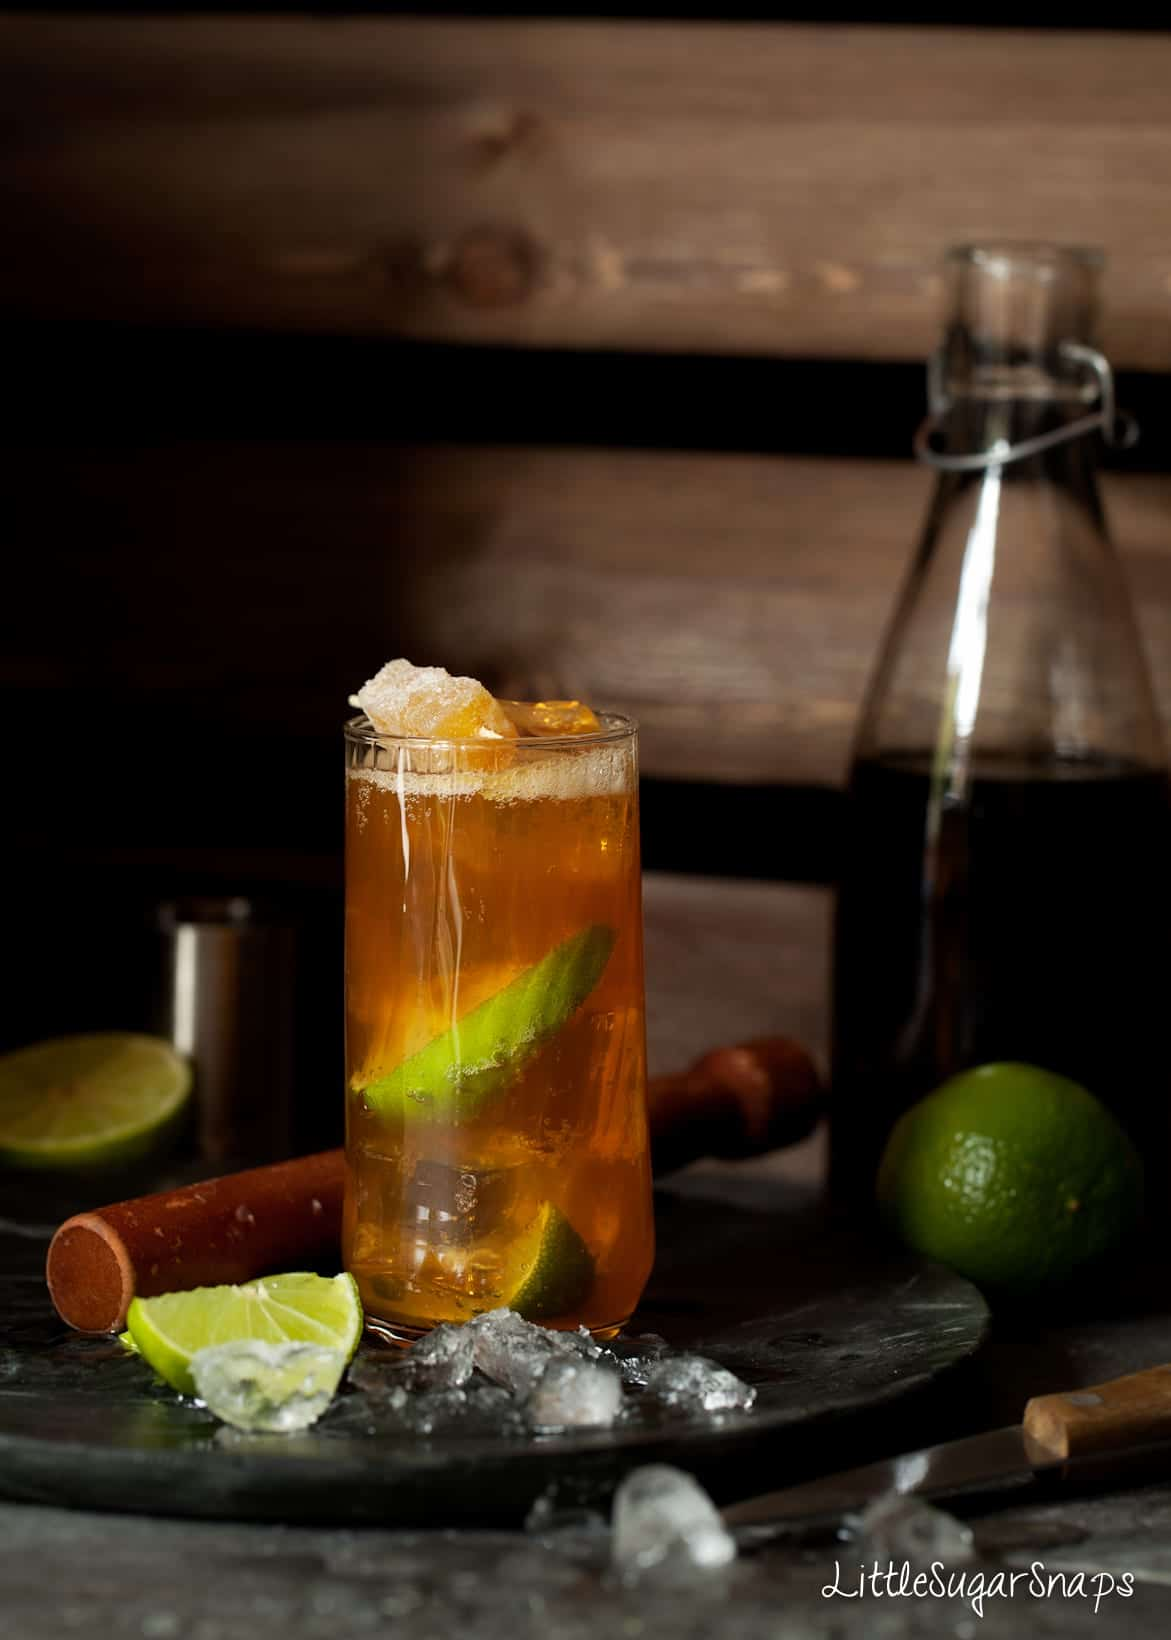 A Dark-n-Stormy cocktail in an ornate glass with ice and fresh lime wedges alongside.